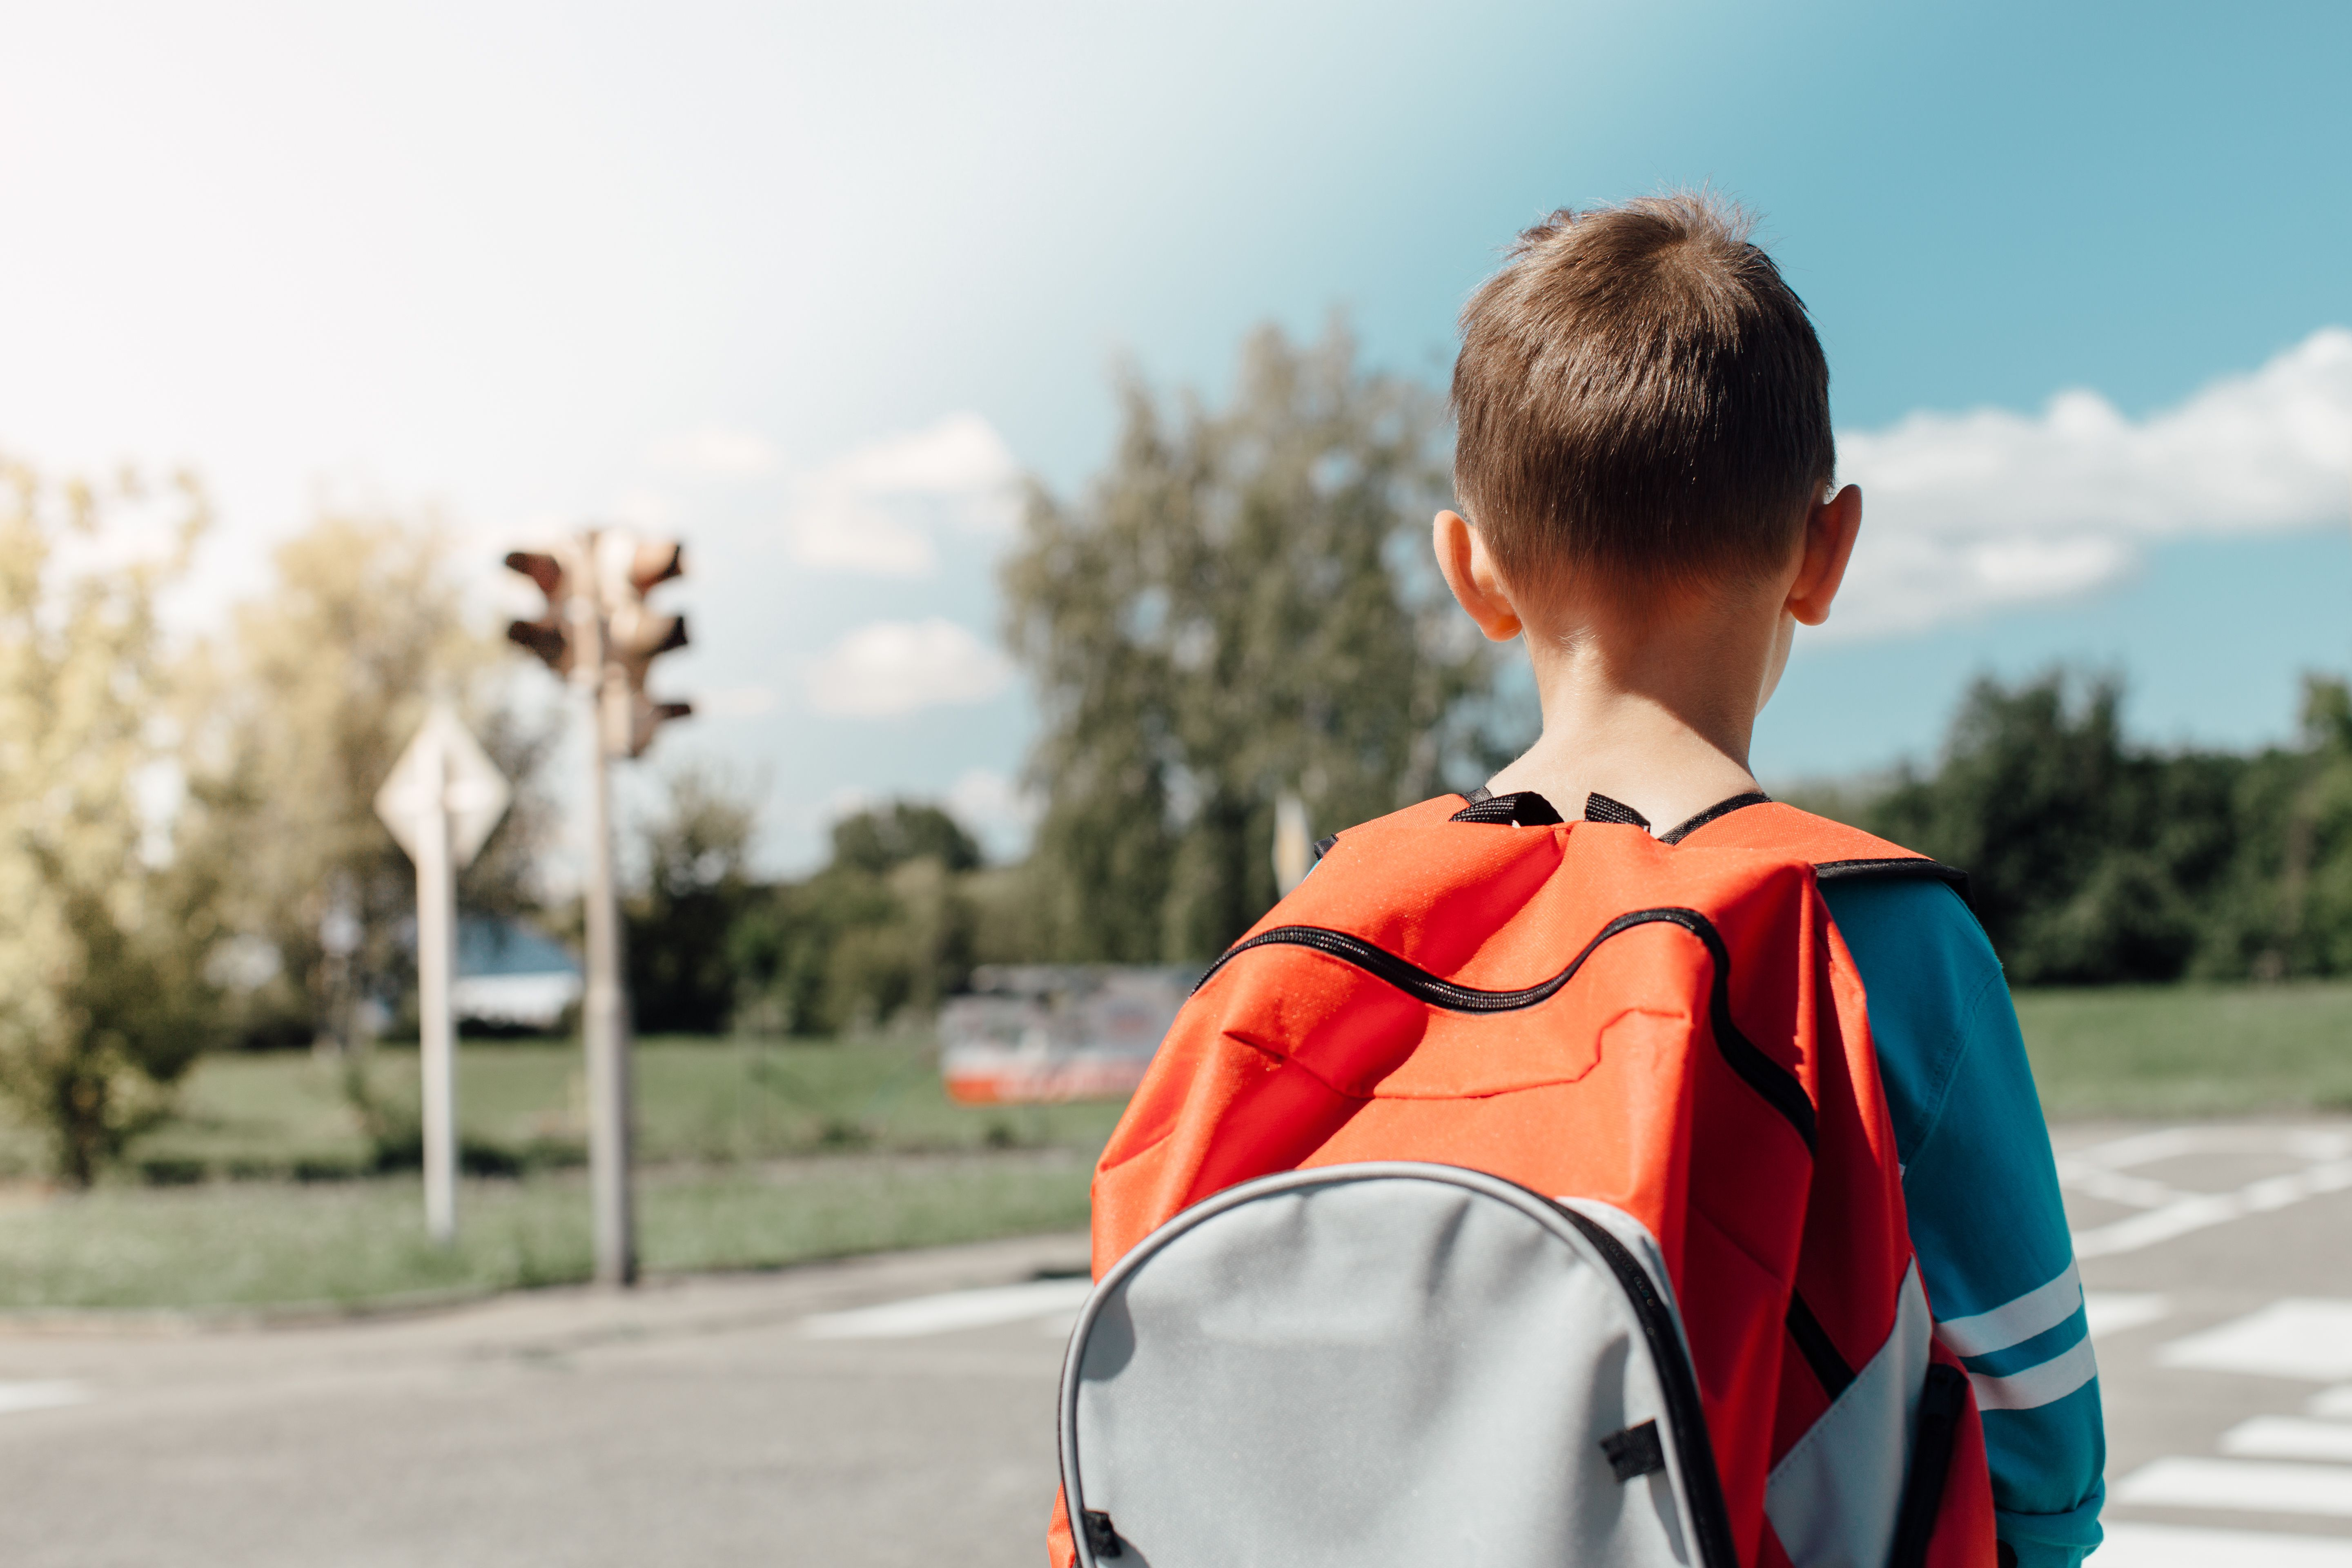 ead696a3596b Rear View Of Schoolboy Carrying Backpack While Standing On Road